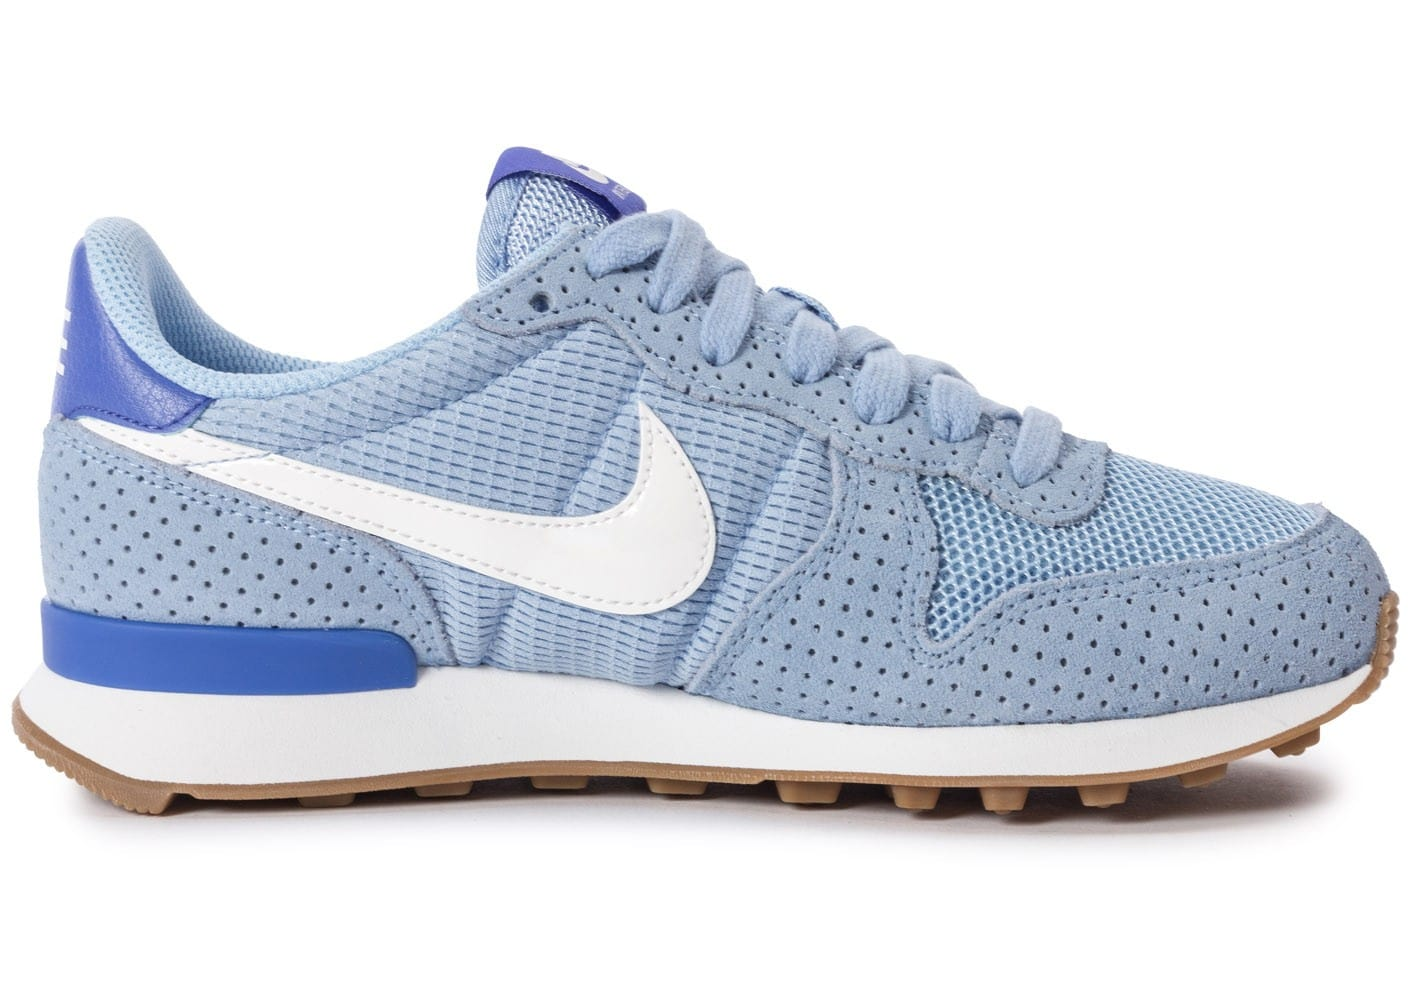 detailed look de50d 1d0fb low cost chaussures nike internationalist wolf grey vue dessous 0f681 95af9